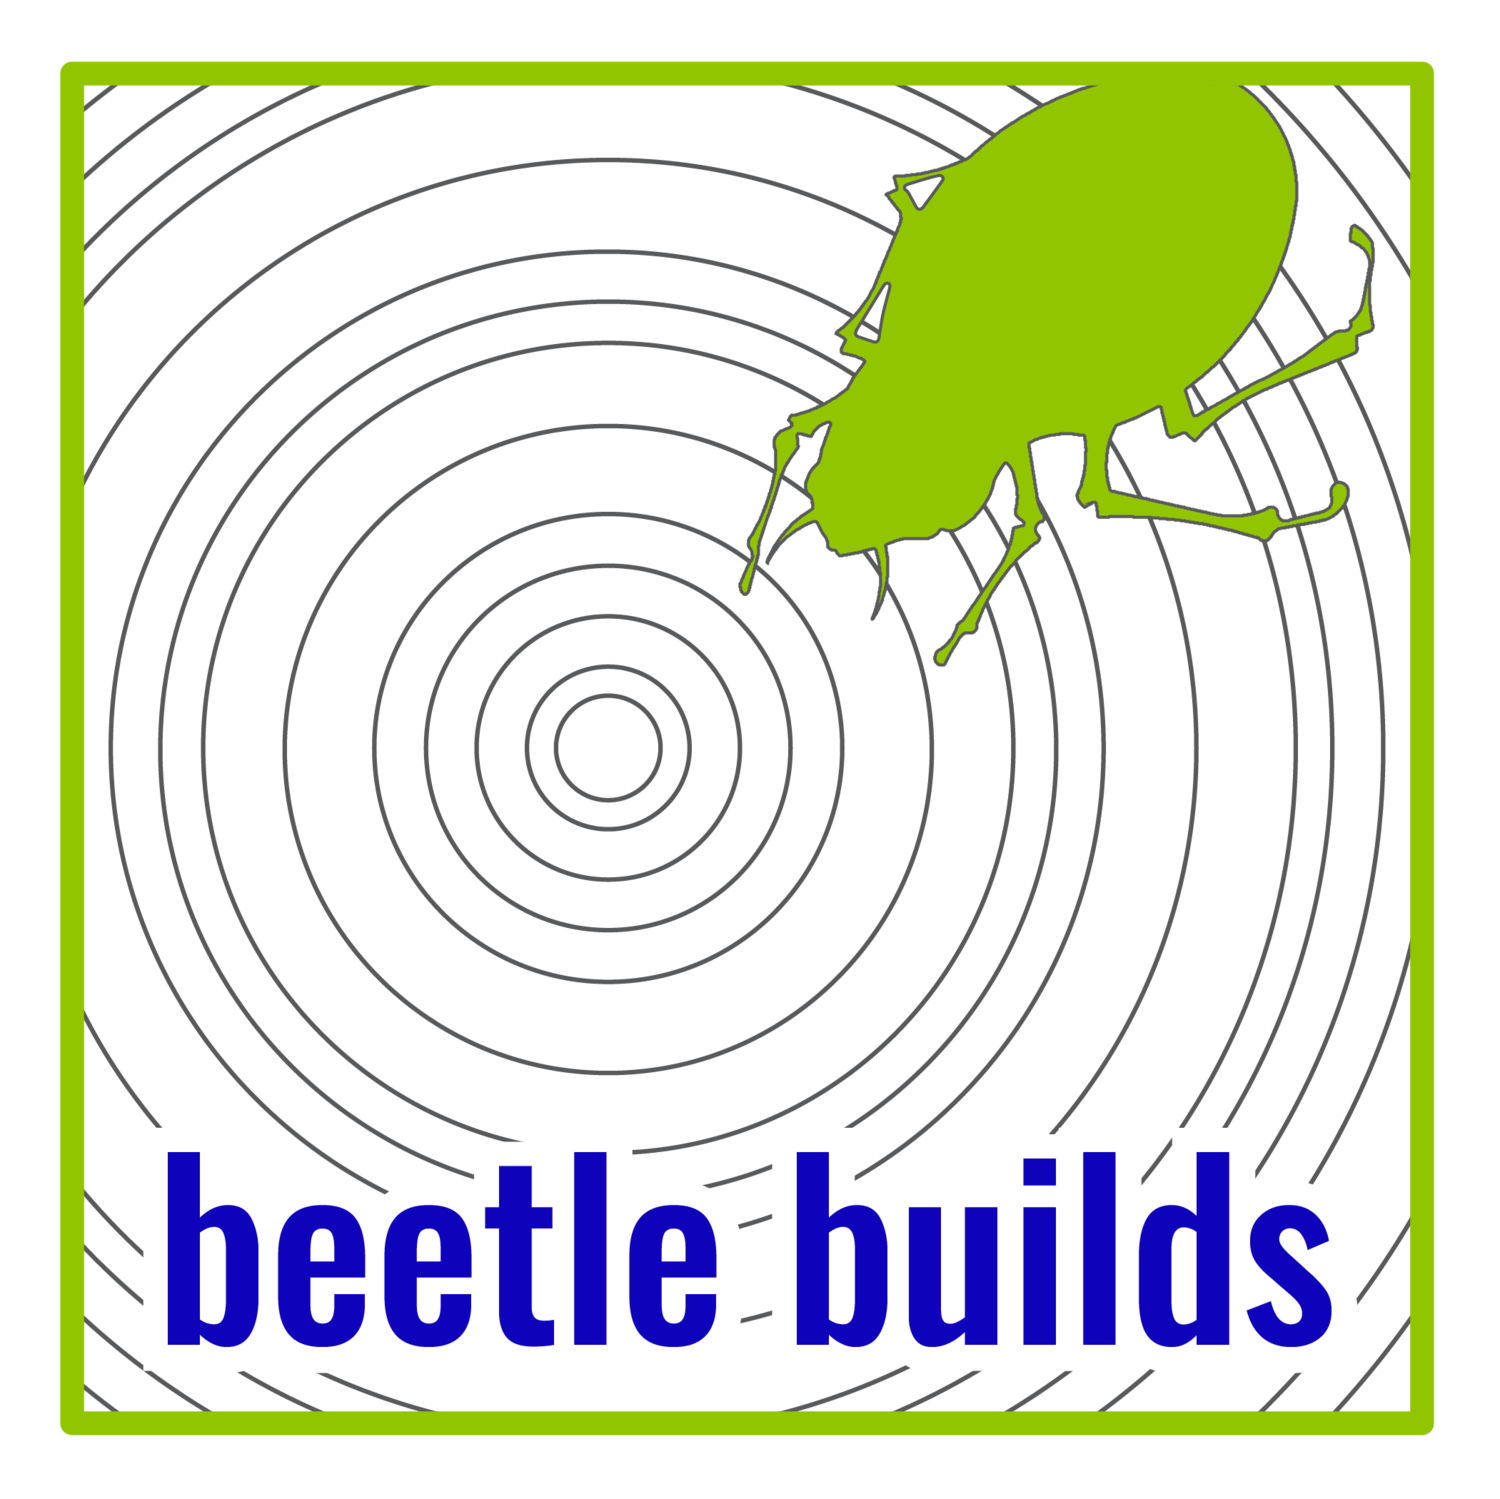 beetle builds